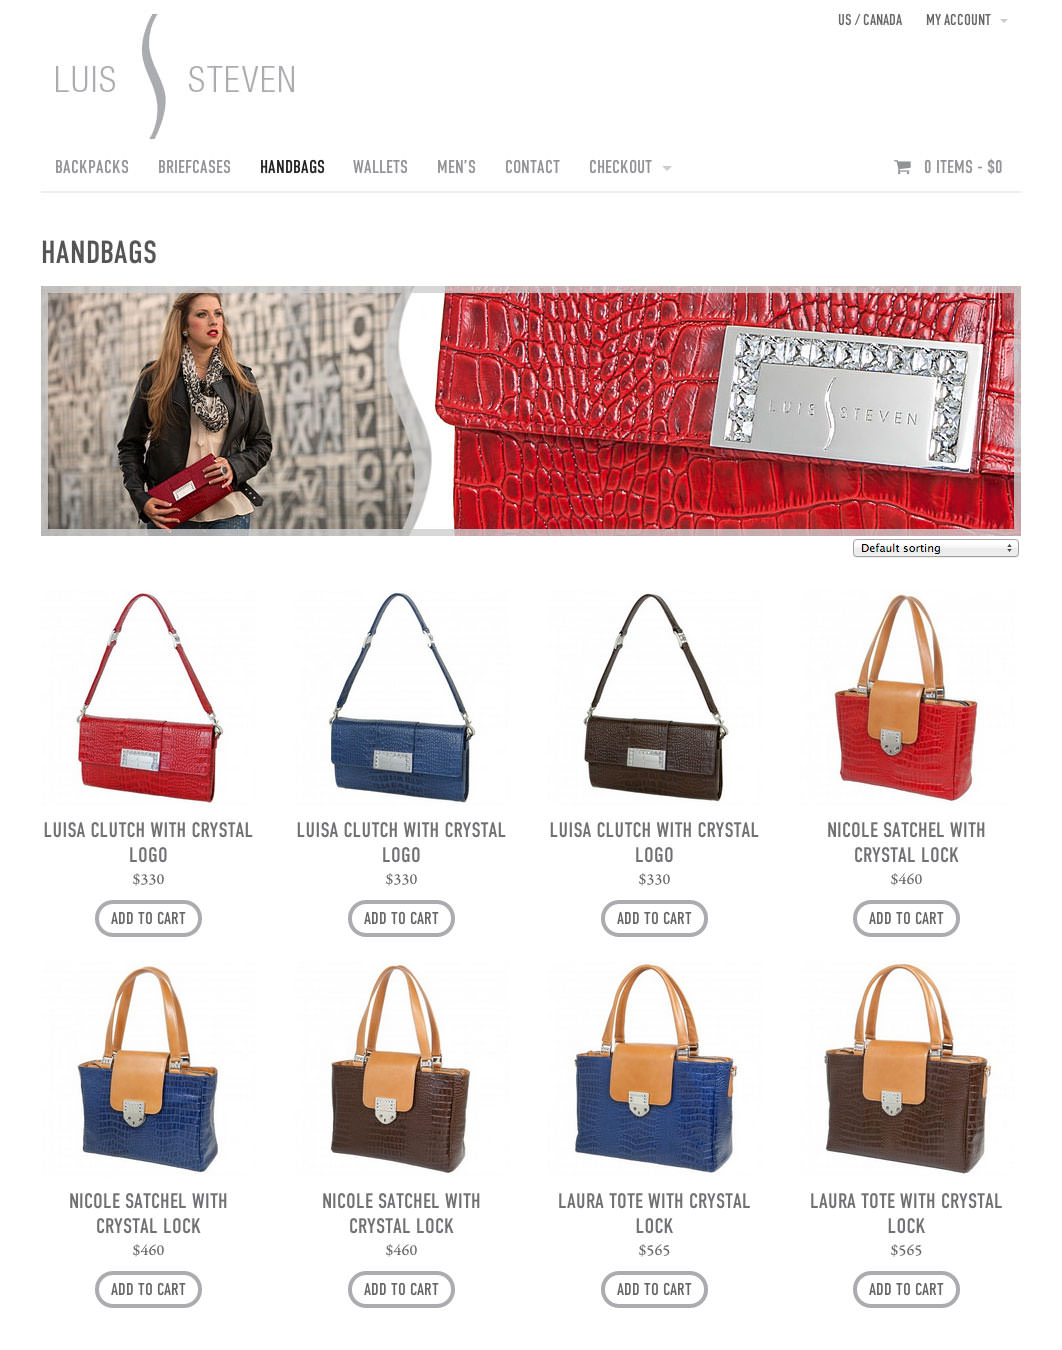 Luis Steven Website - Handbags